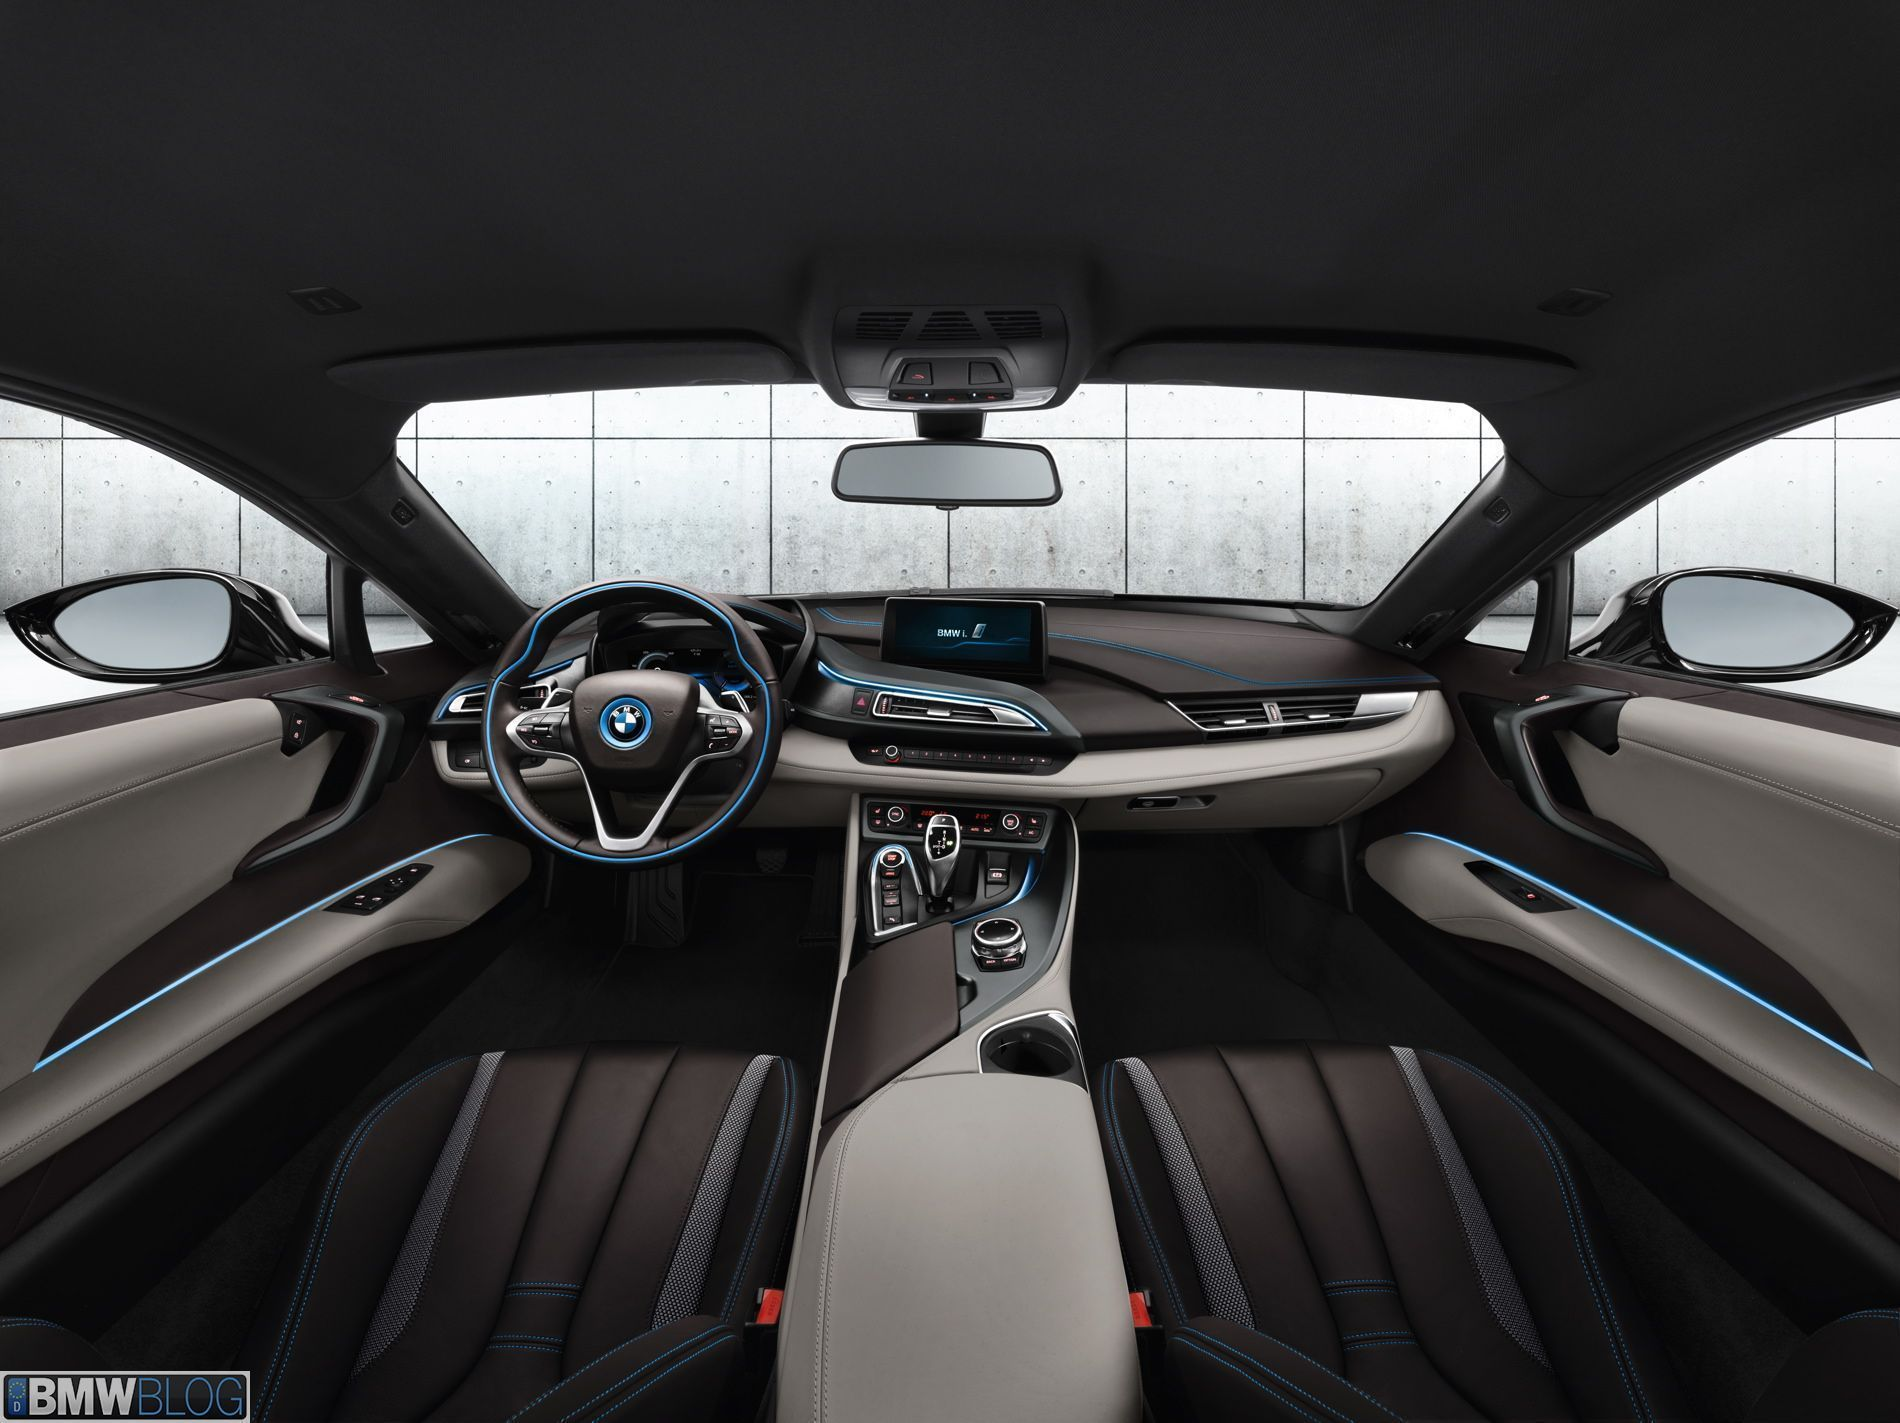 Lovely Bmw I8 Black Interior Wallpapers #bmwi8black #bmwi8interior